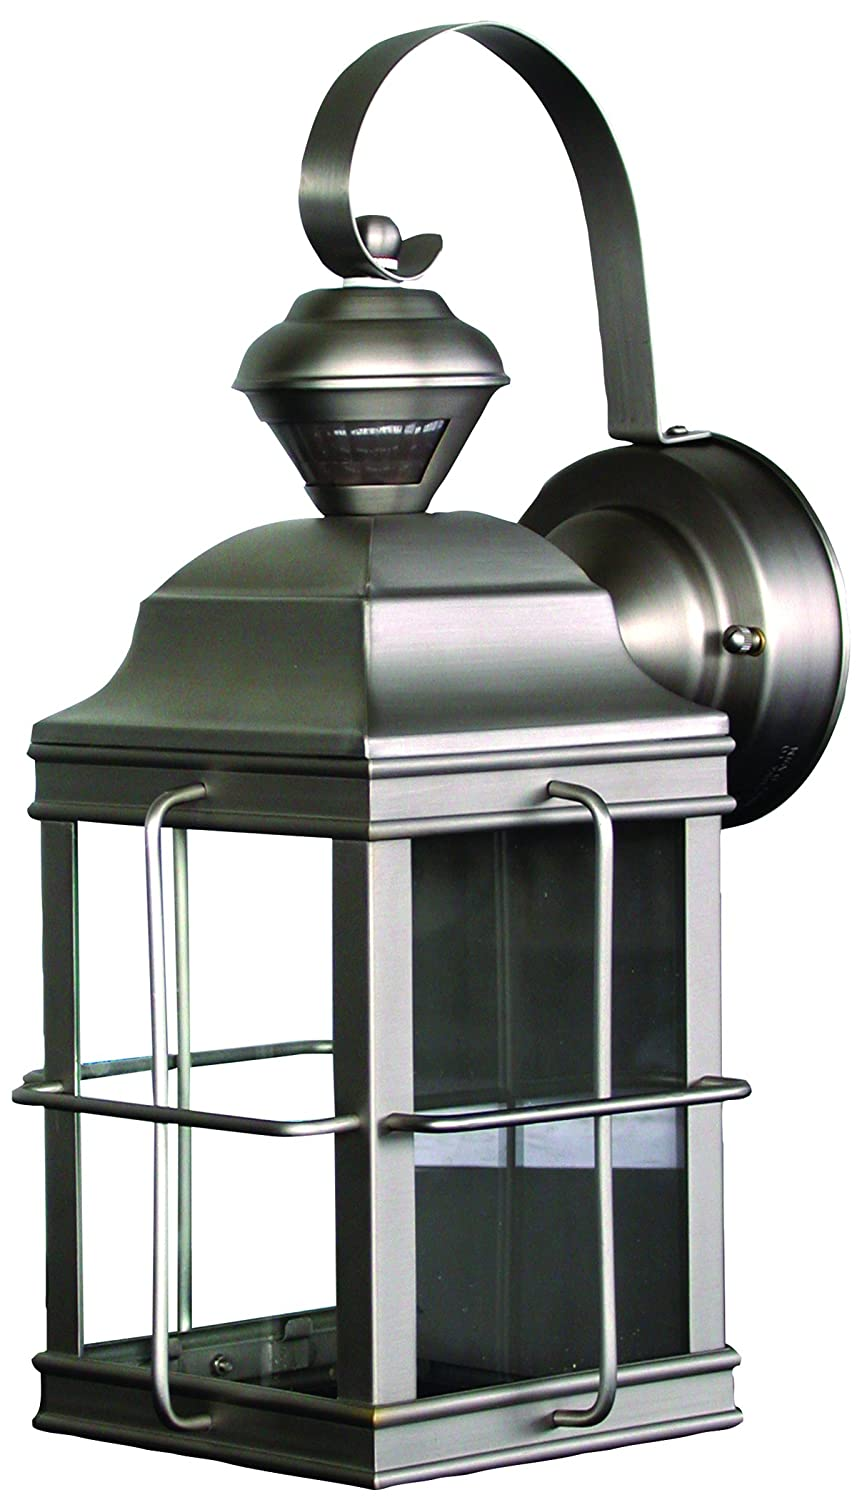 ... Heath Zenith Hz 4144 Nb Motion Sensing 4 Sided New England Style Lantern Brushed Nickel Outdoor ...  sc 1 st  Outdoor Lighting Ideas & Motion Sensing Outdoor Light Fixtures - Outdoor Lighting Ideas